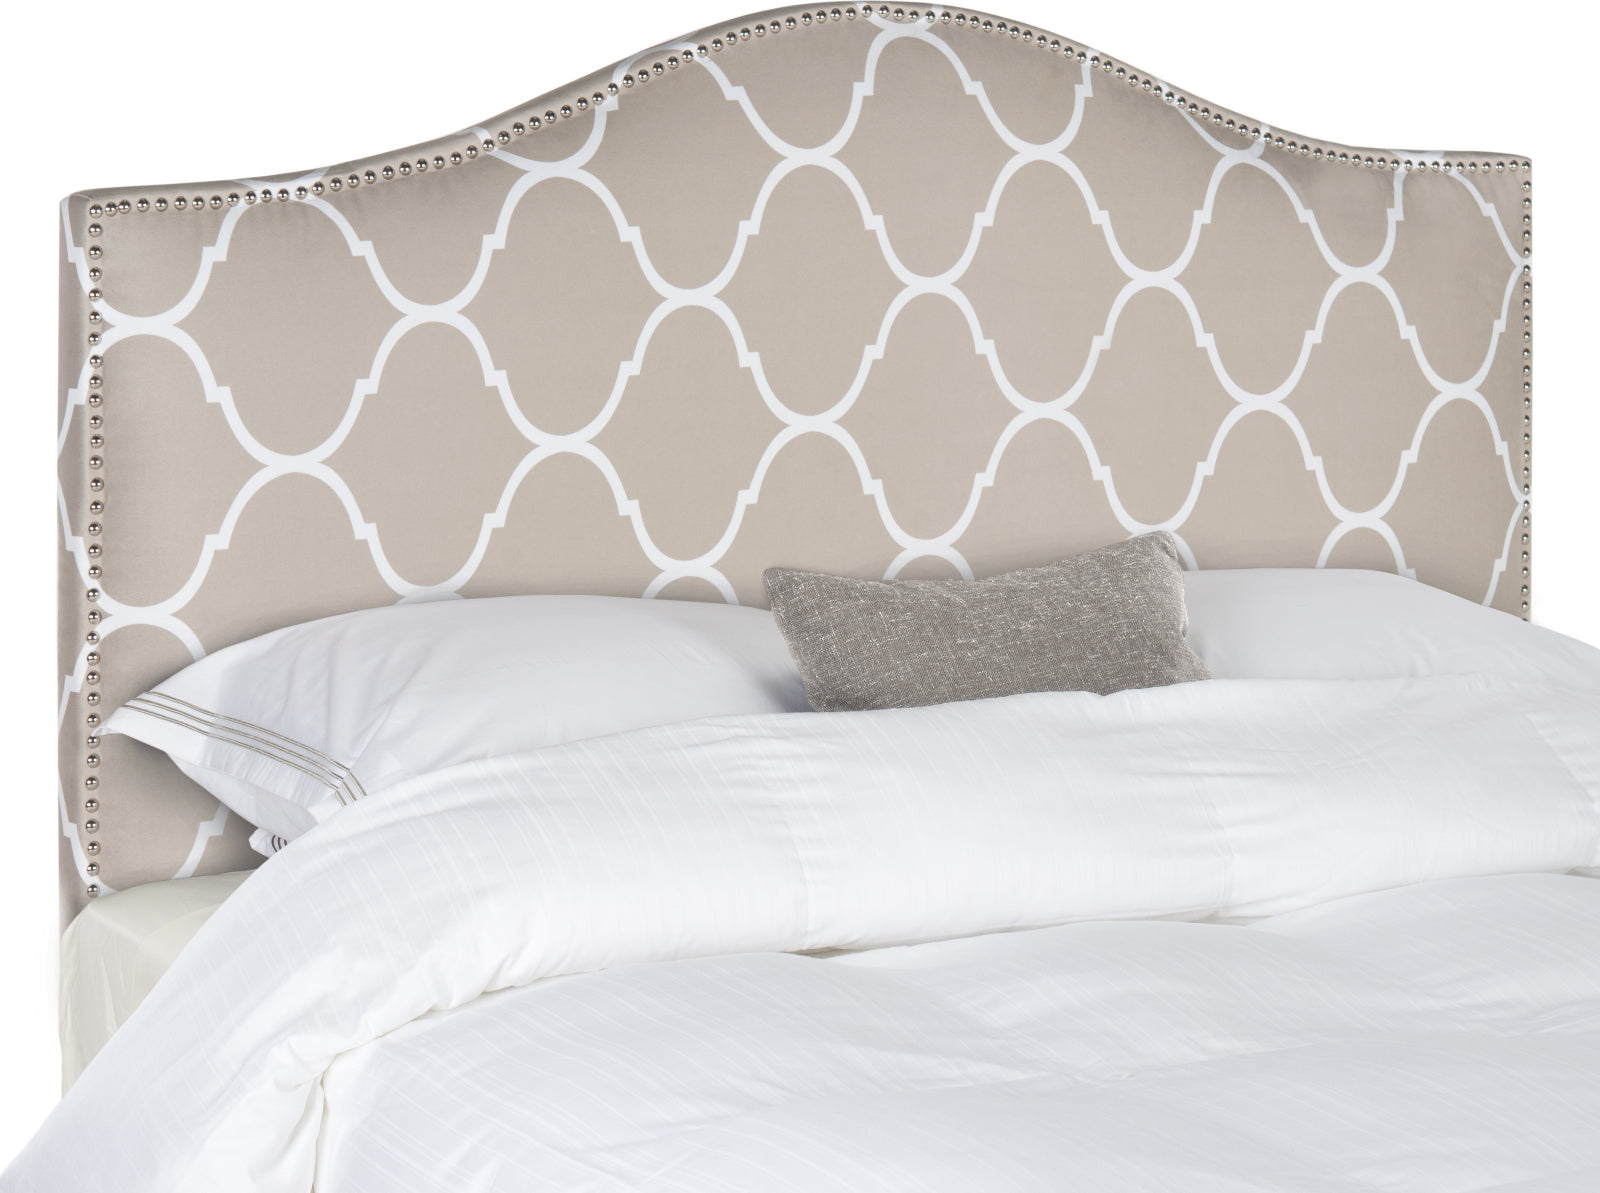 Safavieh Connie Pearl Lattice Grey Headboard Bedding main image